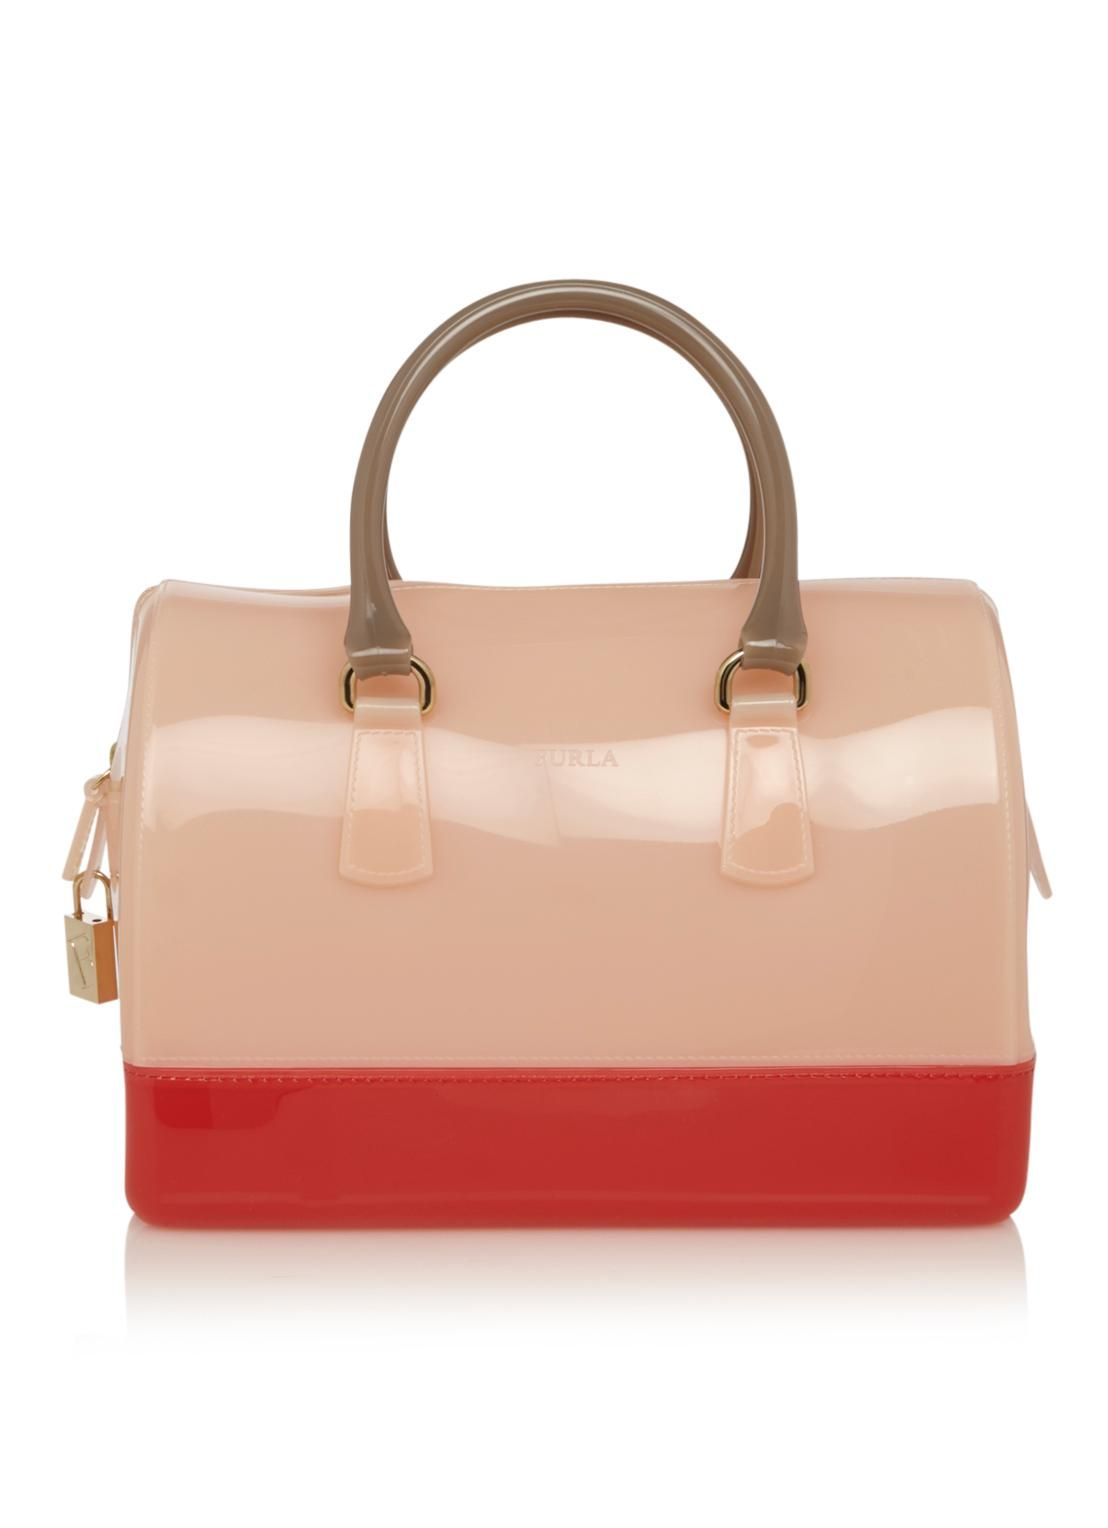 Candy Bag Bicolor in roze